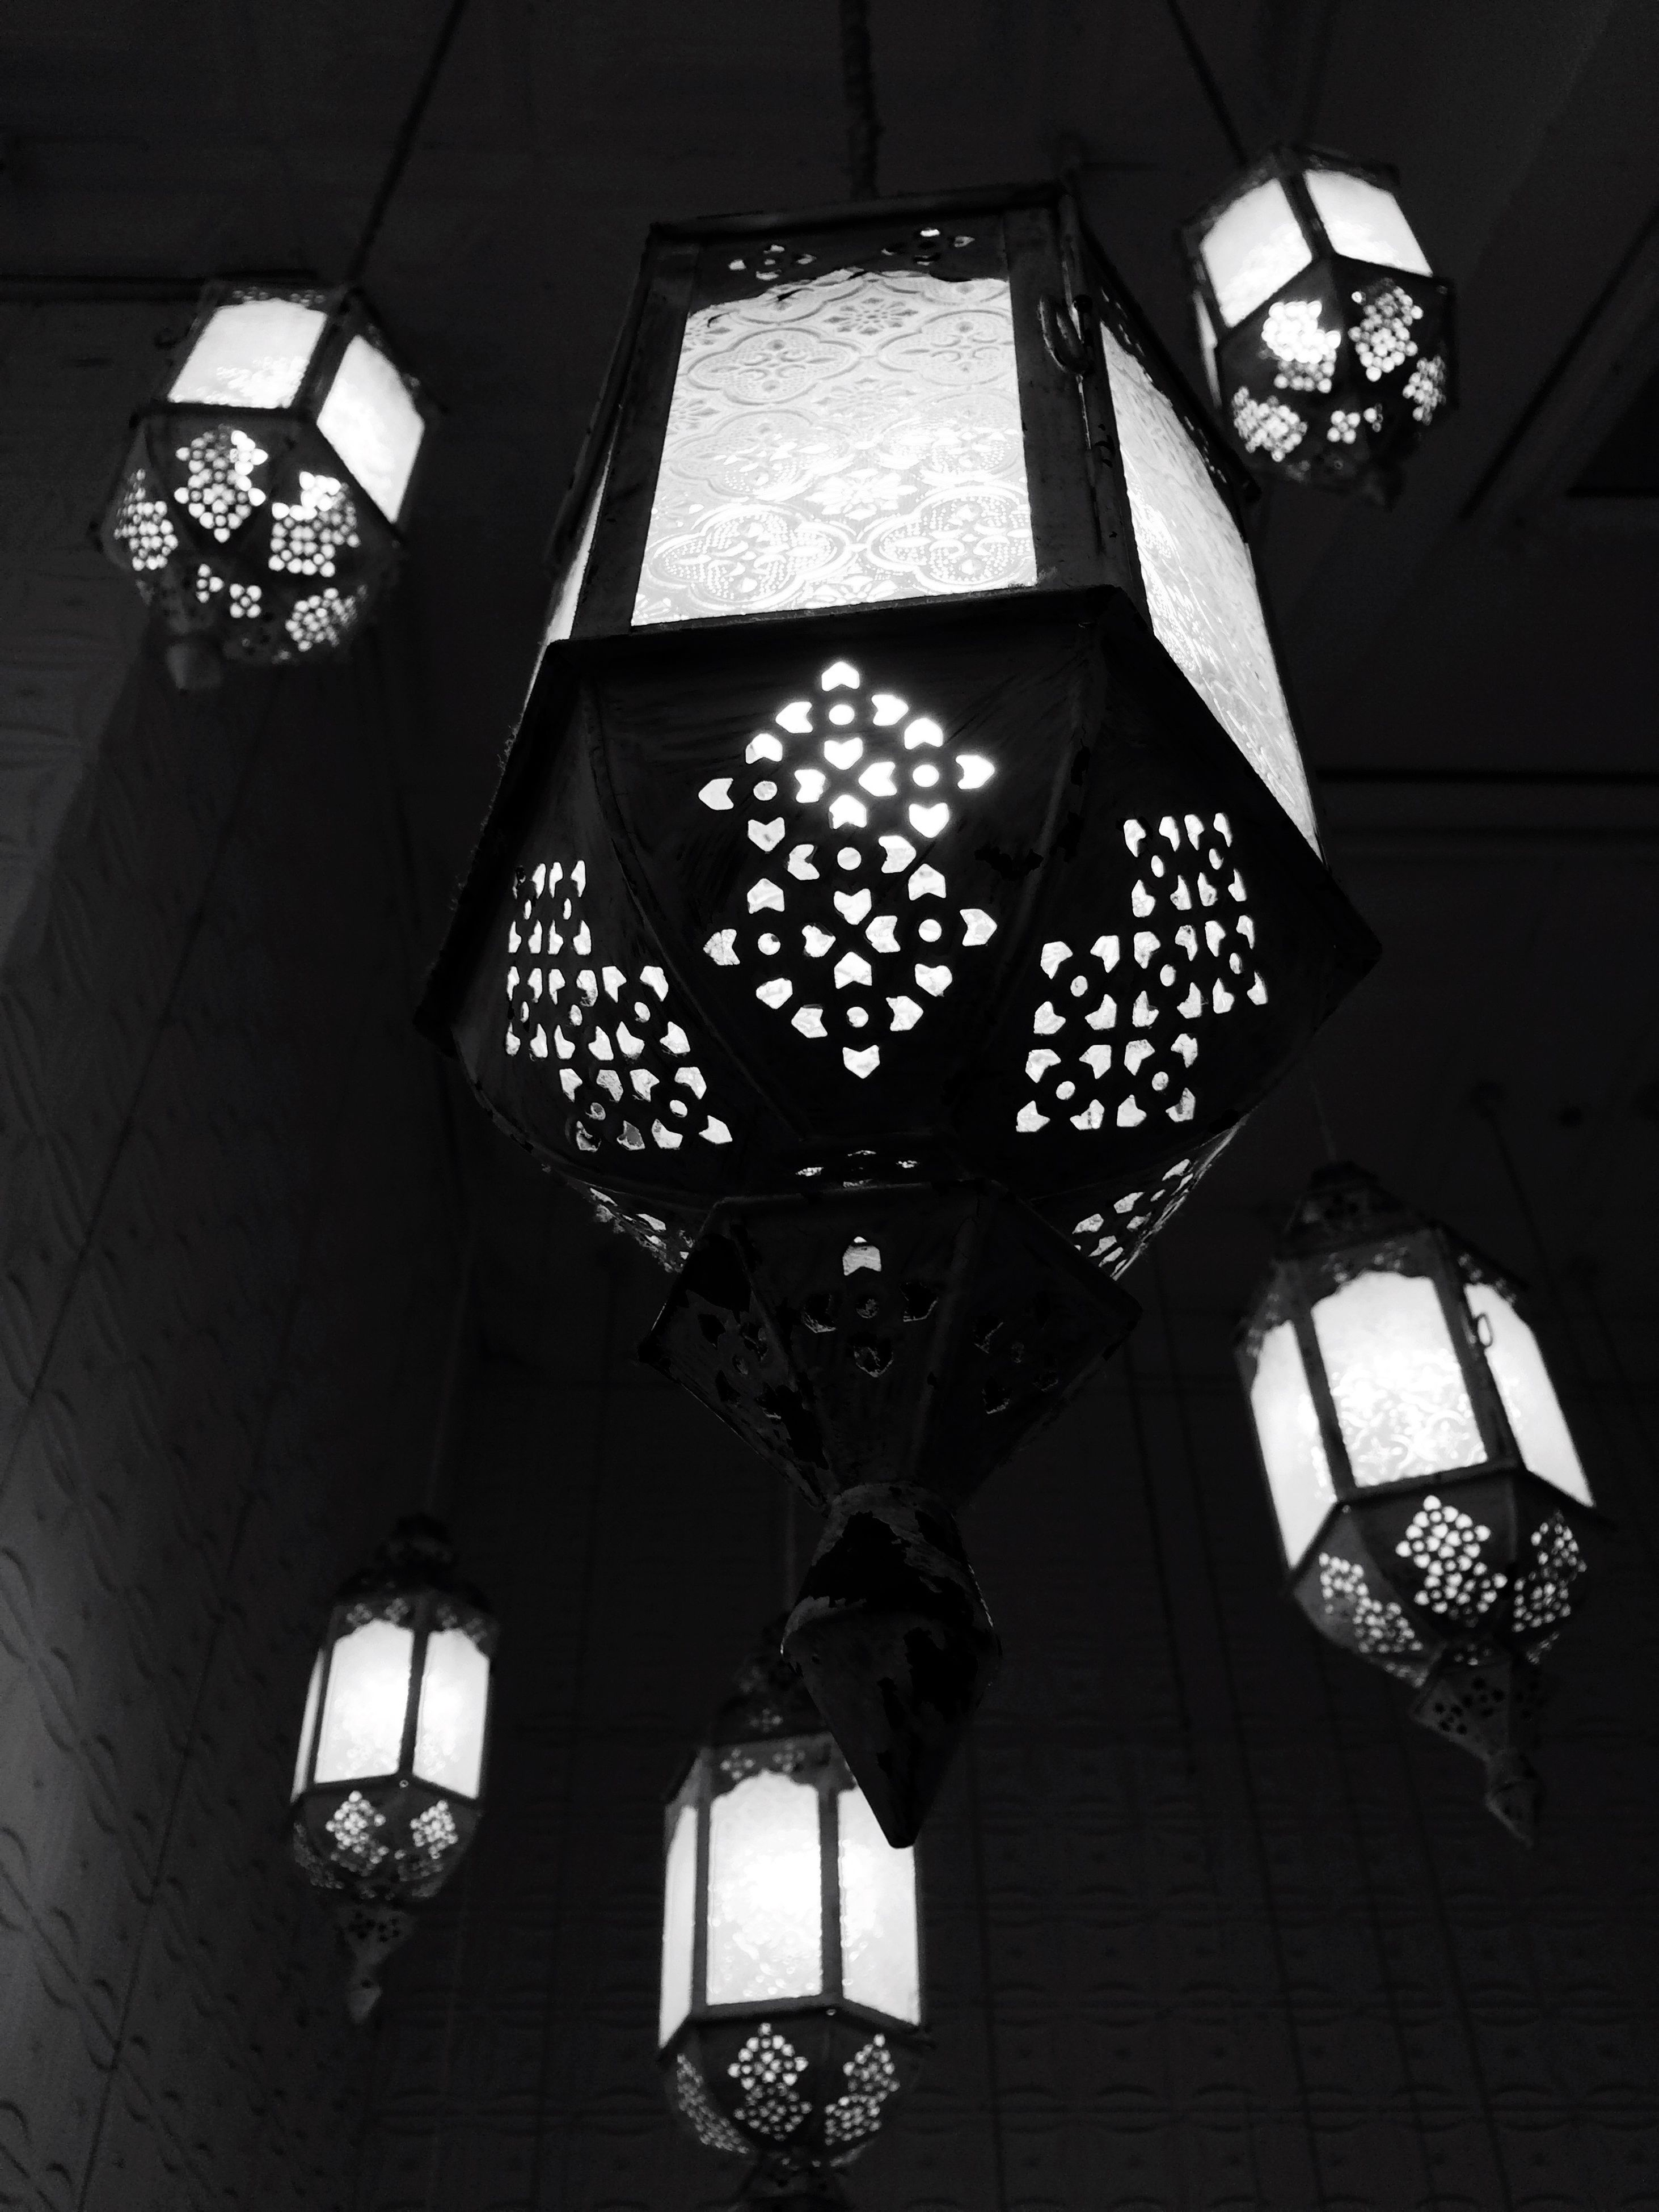 indoors, ceiling, low angle view, architecture, built structure, lighting equipment, illuminated, hanging, window, electric light, building, chandelier, electric lamp, no people, pattern, electricity, interior, building exterior, decoration, wall - building feature